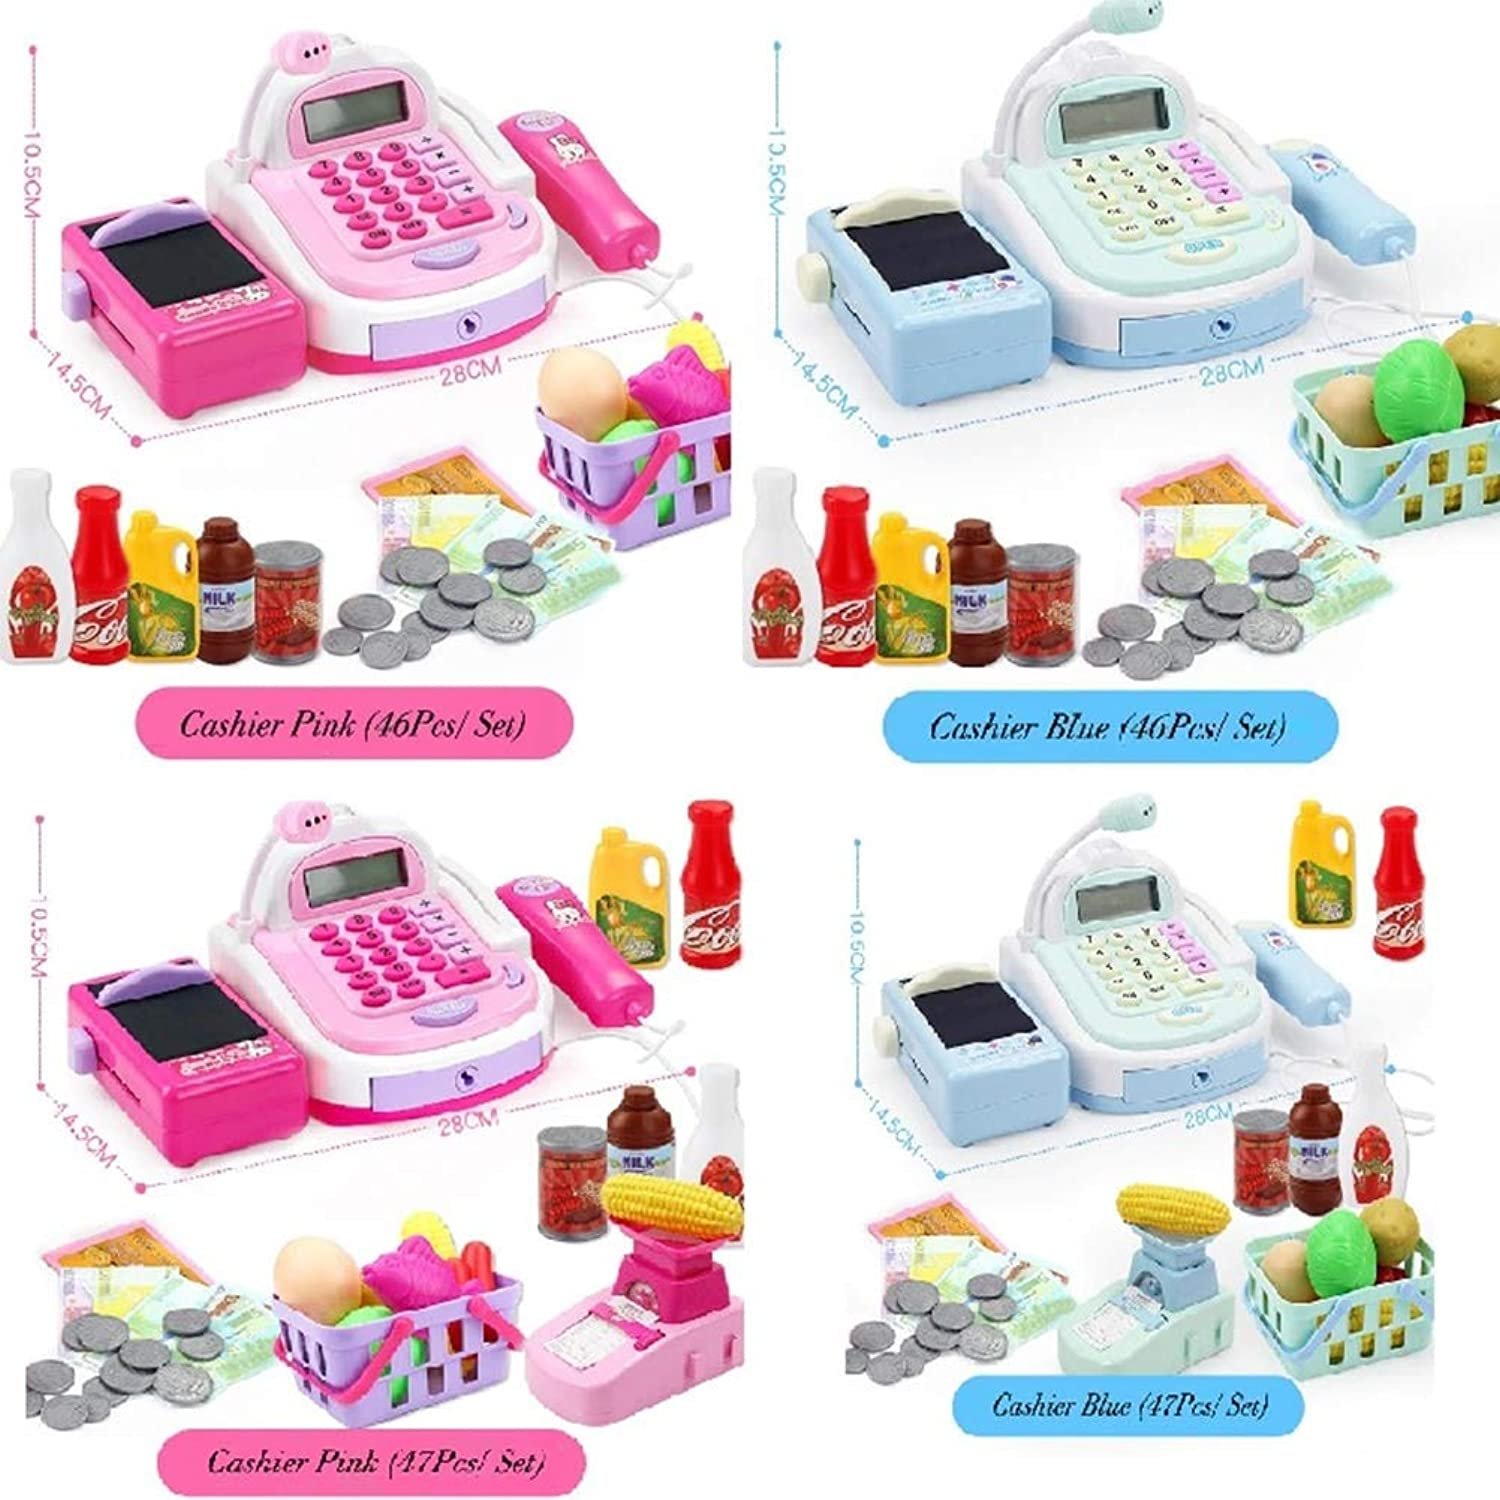 Mini Simulated Supermarket Checkout Counter Role Play Cashier Cash Register Set Kids Pretend Play Early Educational Toys